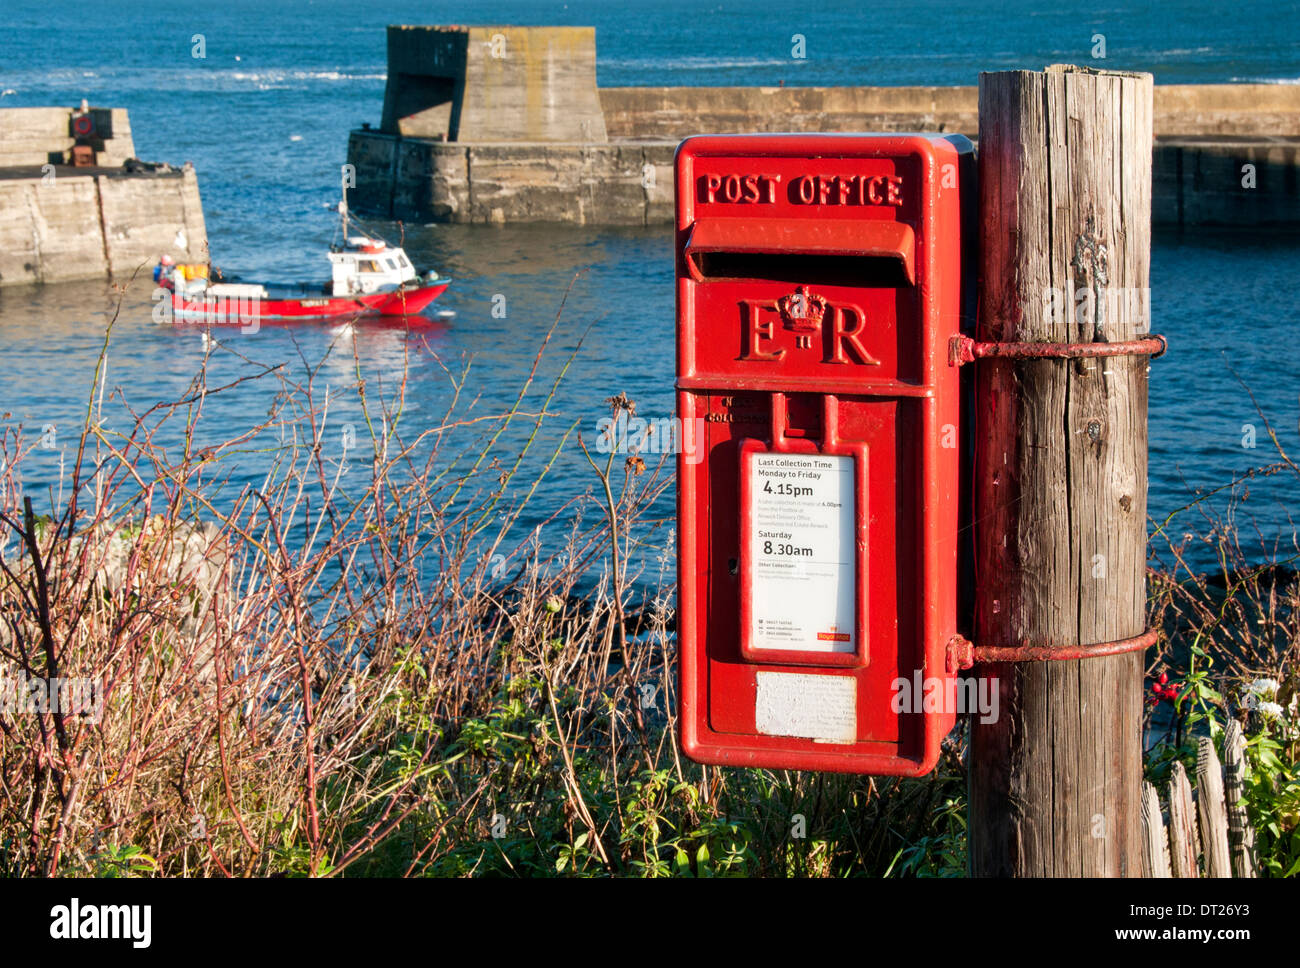 Bright Red British Post Box by the Harbour in the village of Craster, Craster, Northumberland, England, UK - Stock Image